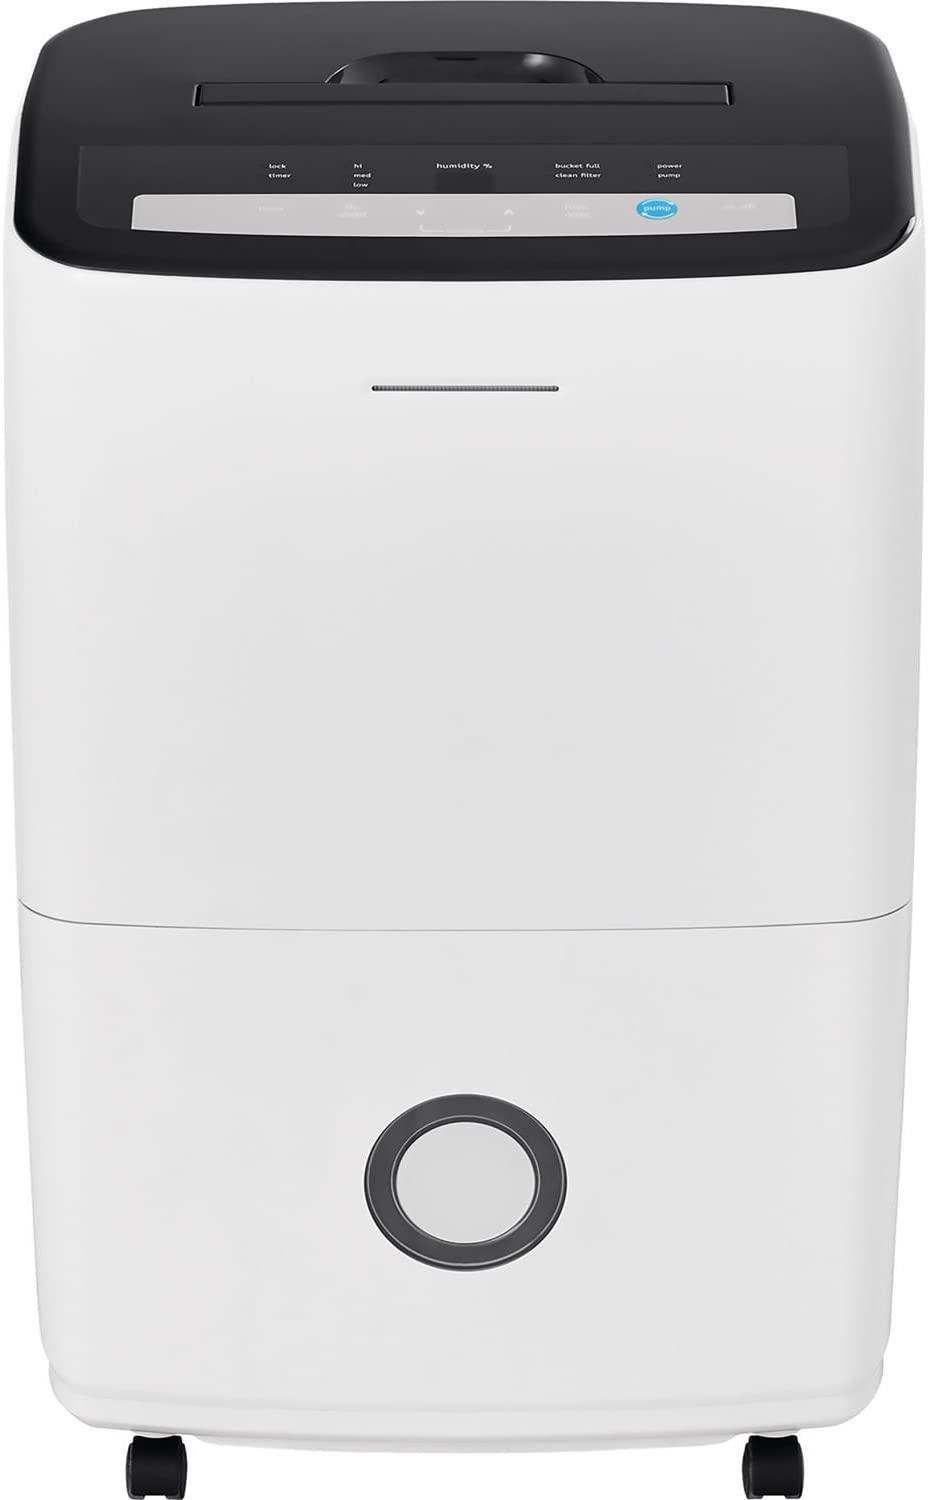 FFAP7033T1 dehumidifier review